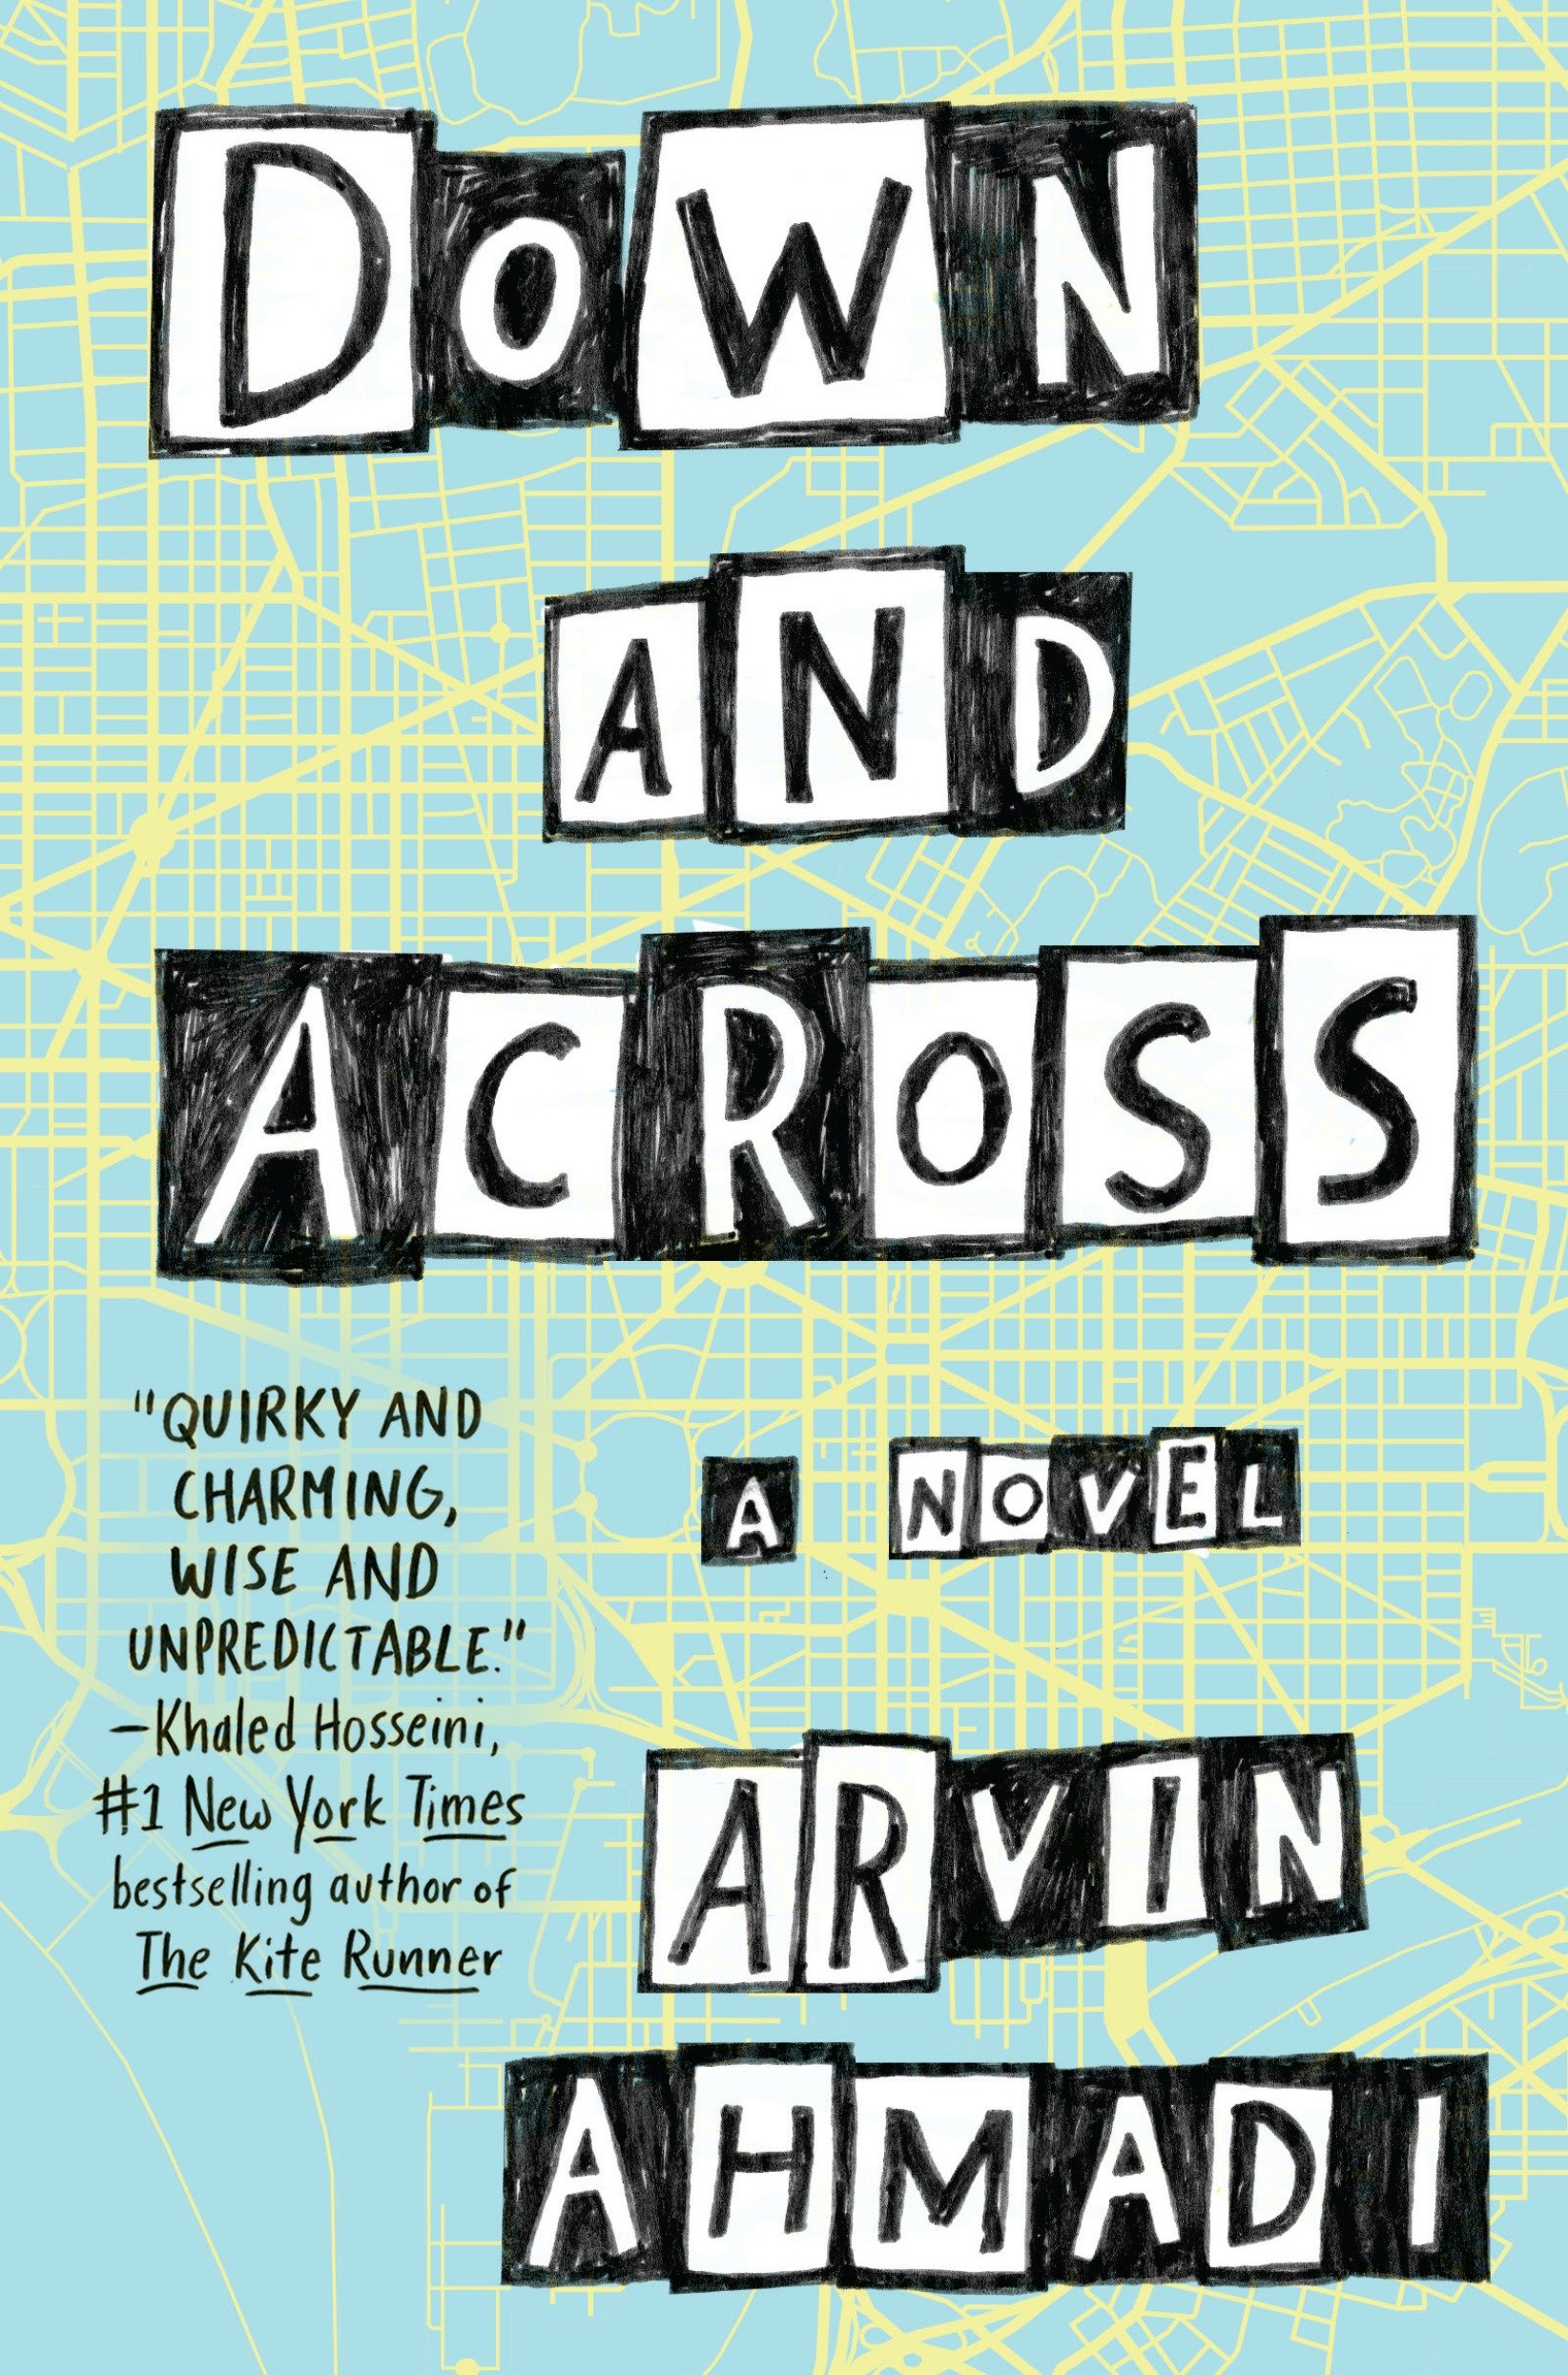 Down and across cover image